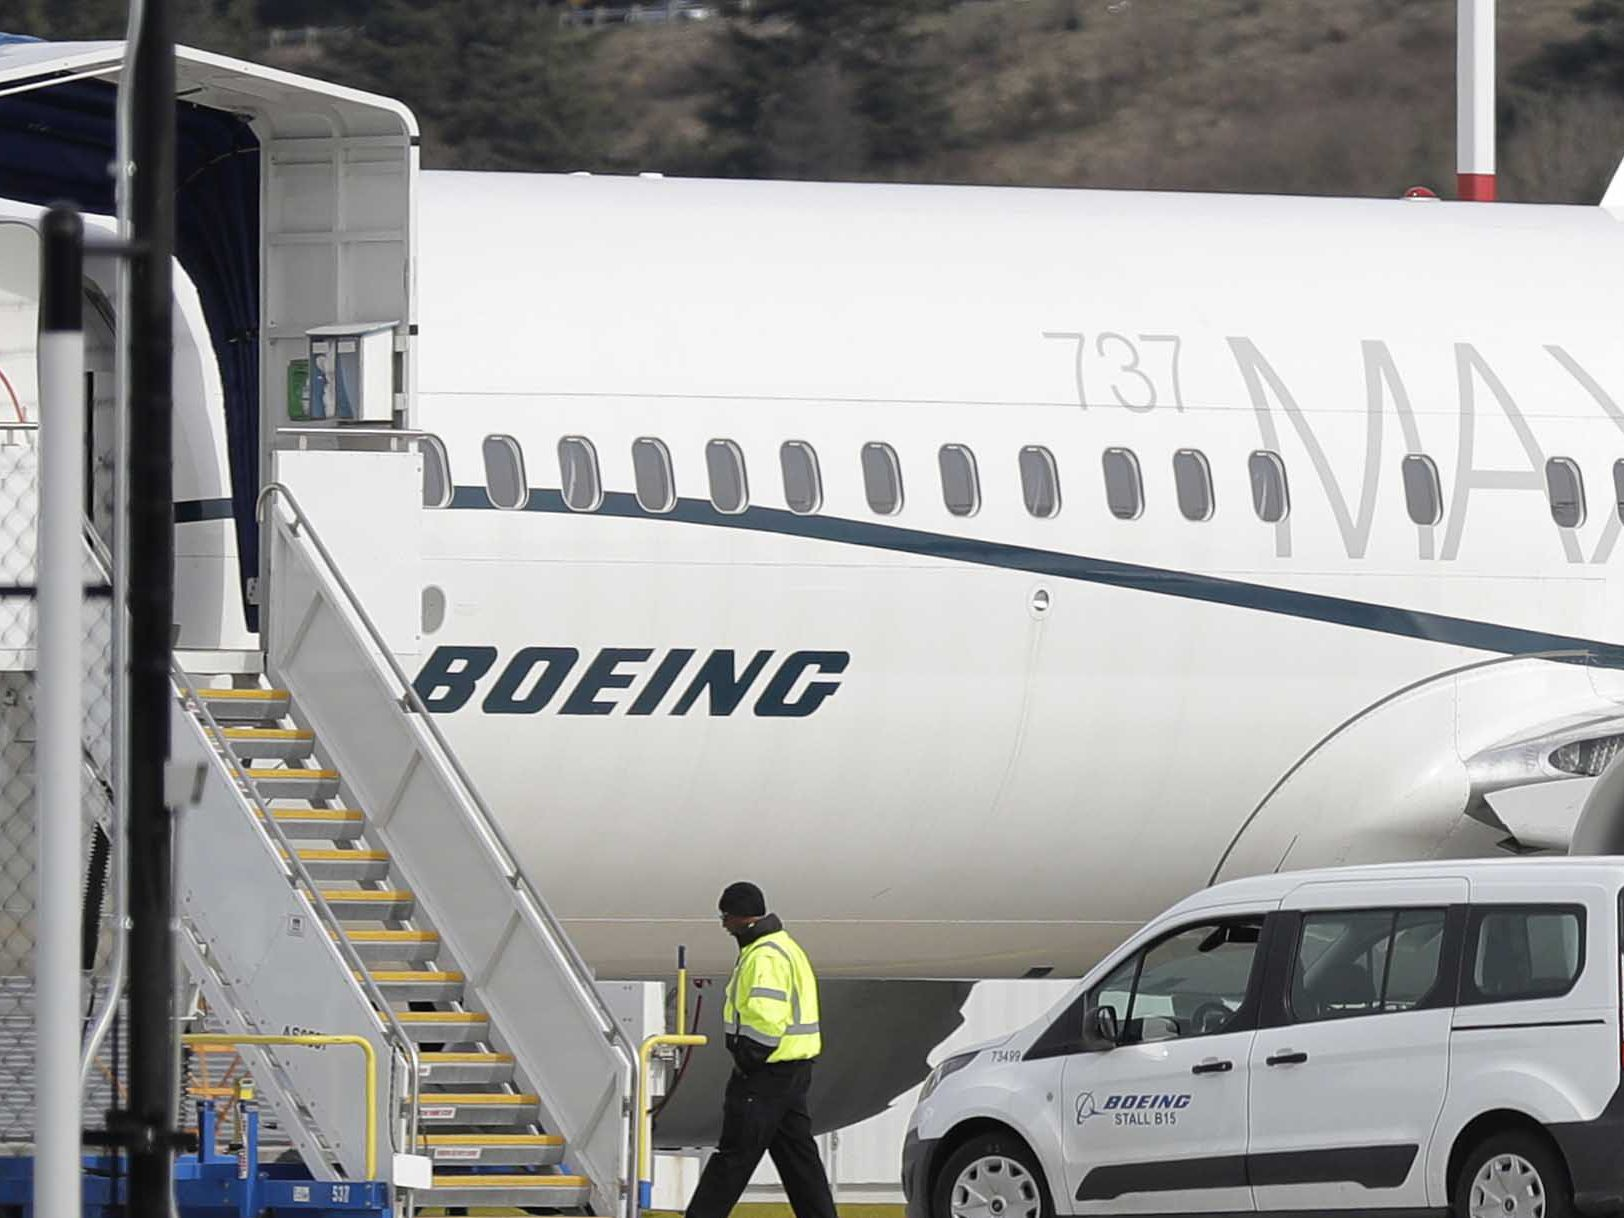 AP Source: Justice Dept. probing development of Boeing jets